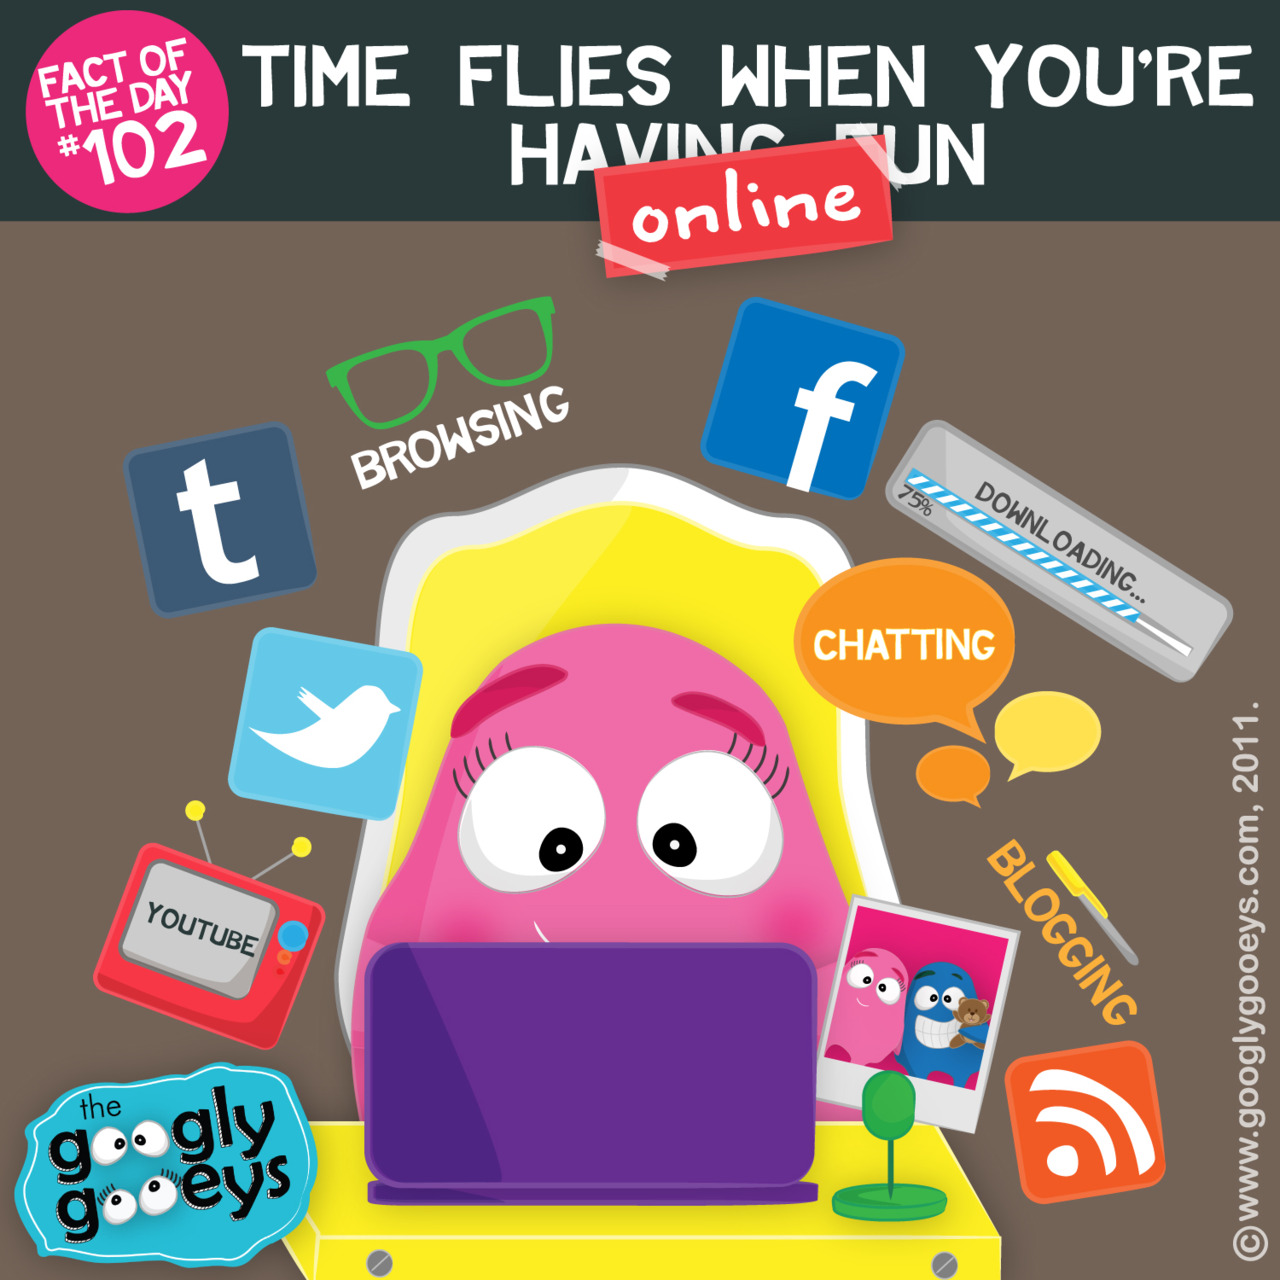 Fact of the Day #102: Time flies when you're online.